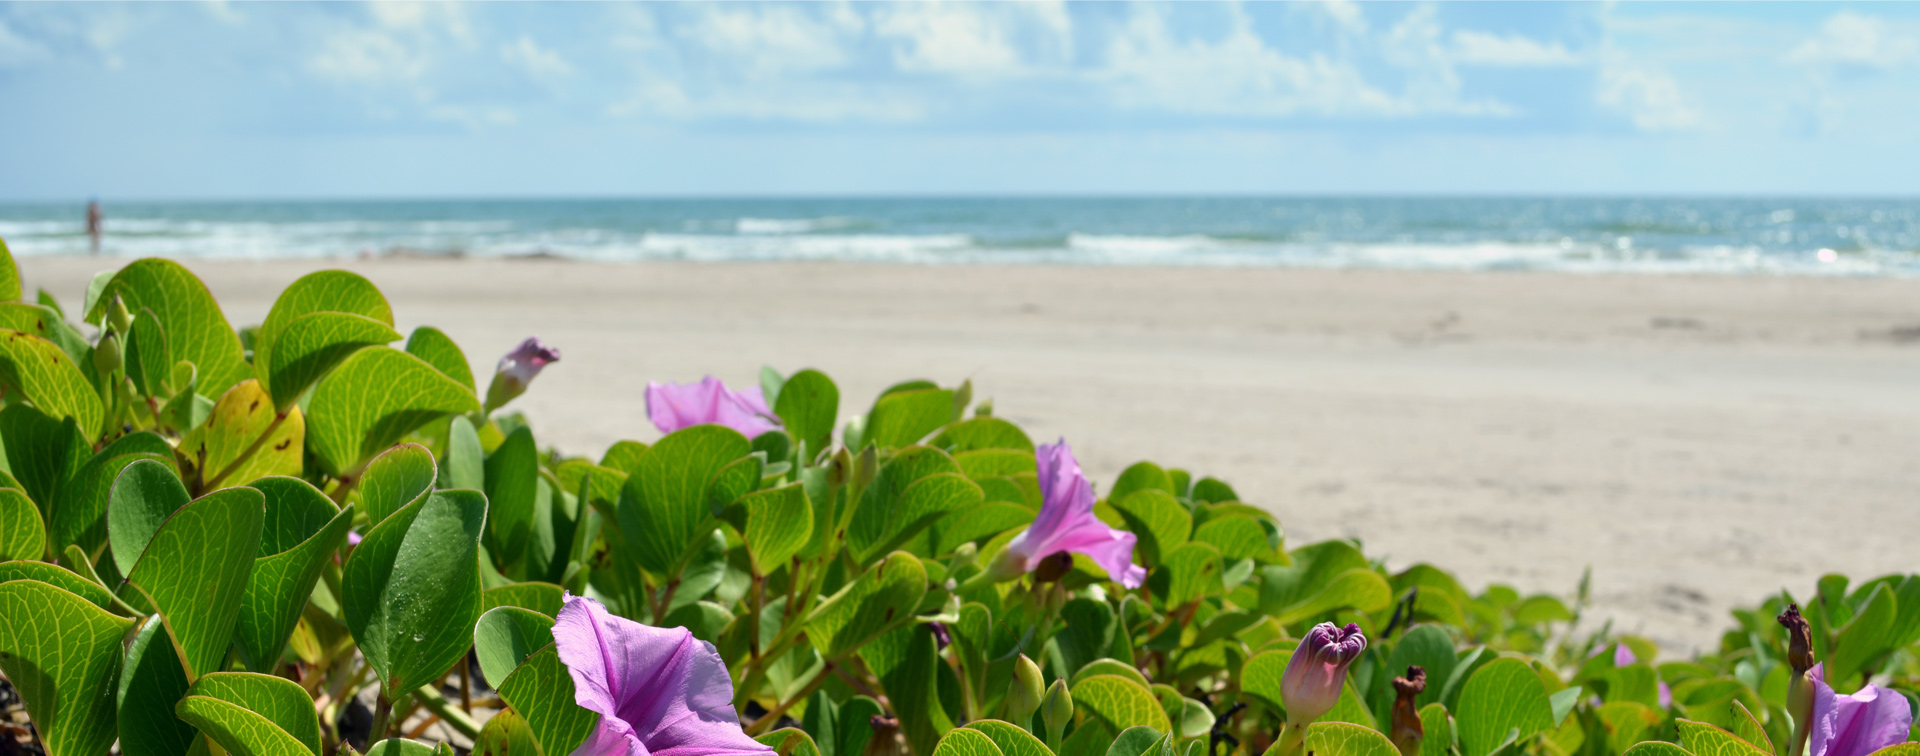 Beach Flower background